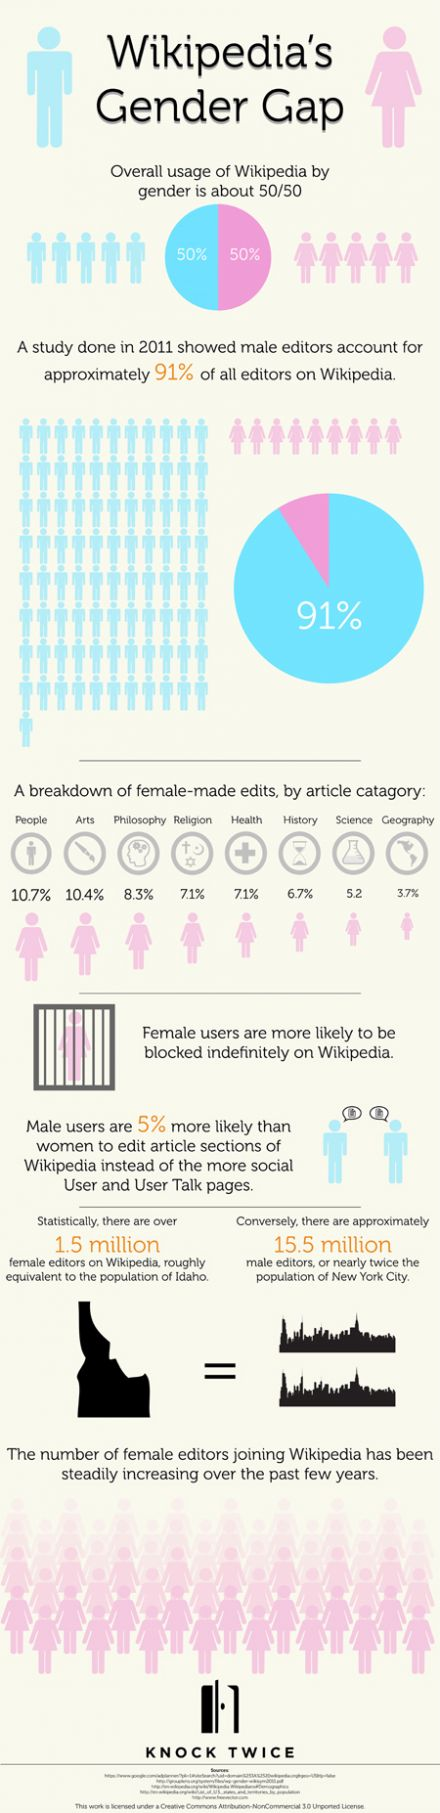 Wikipedia's Gender Gap